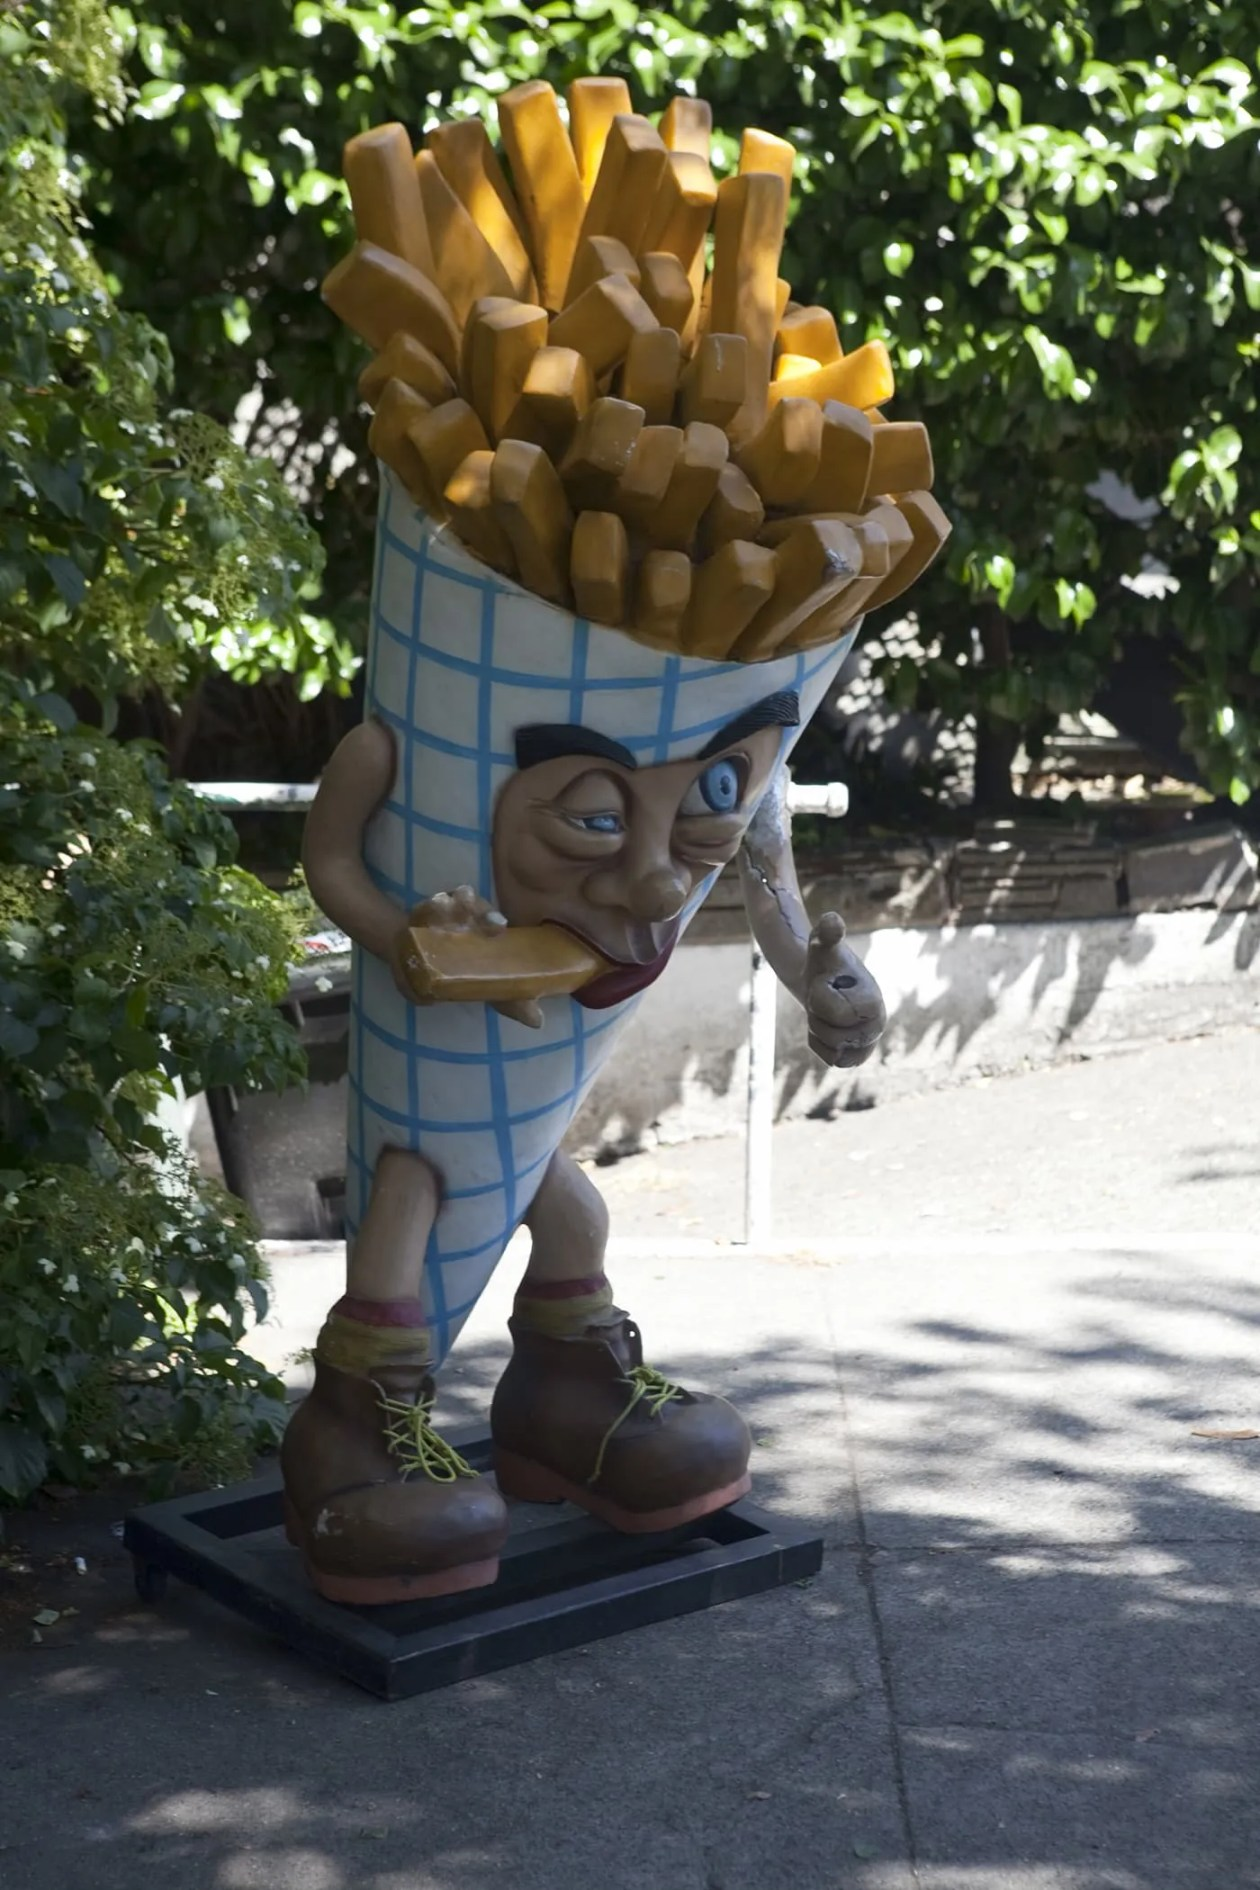 Deluxe Junk Fry Guy -  Giant cone of french fries eating a french fry outside of Deluxe Junk in Fremont, Seattle, Washington.